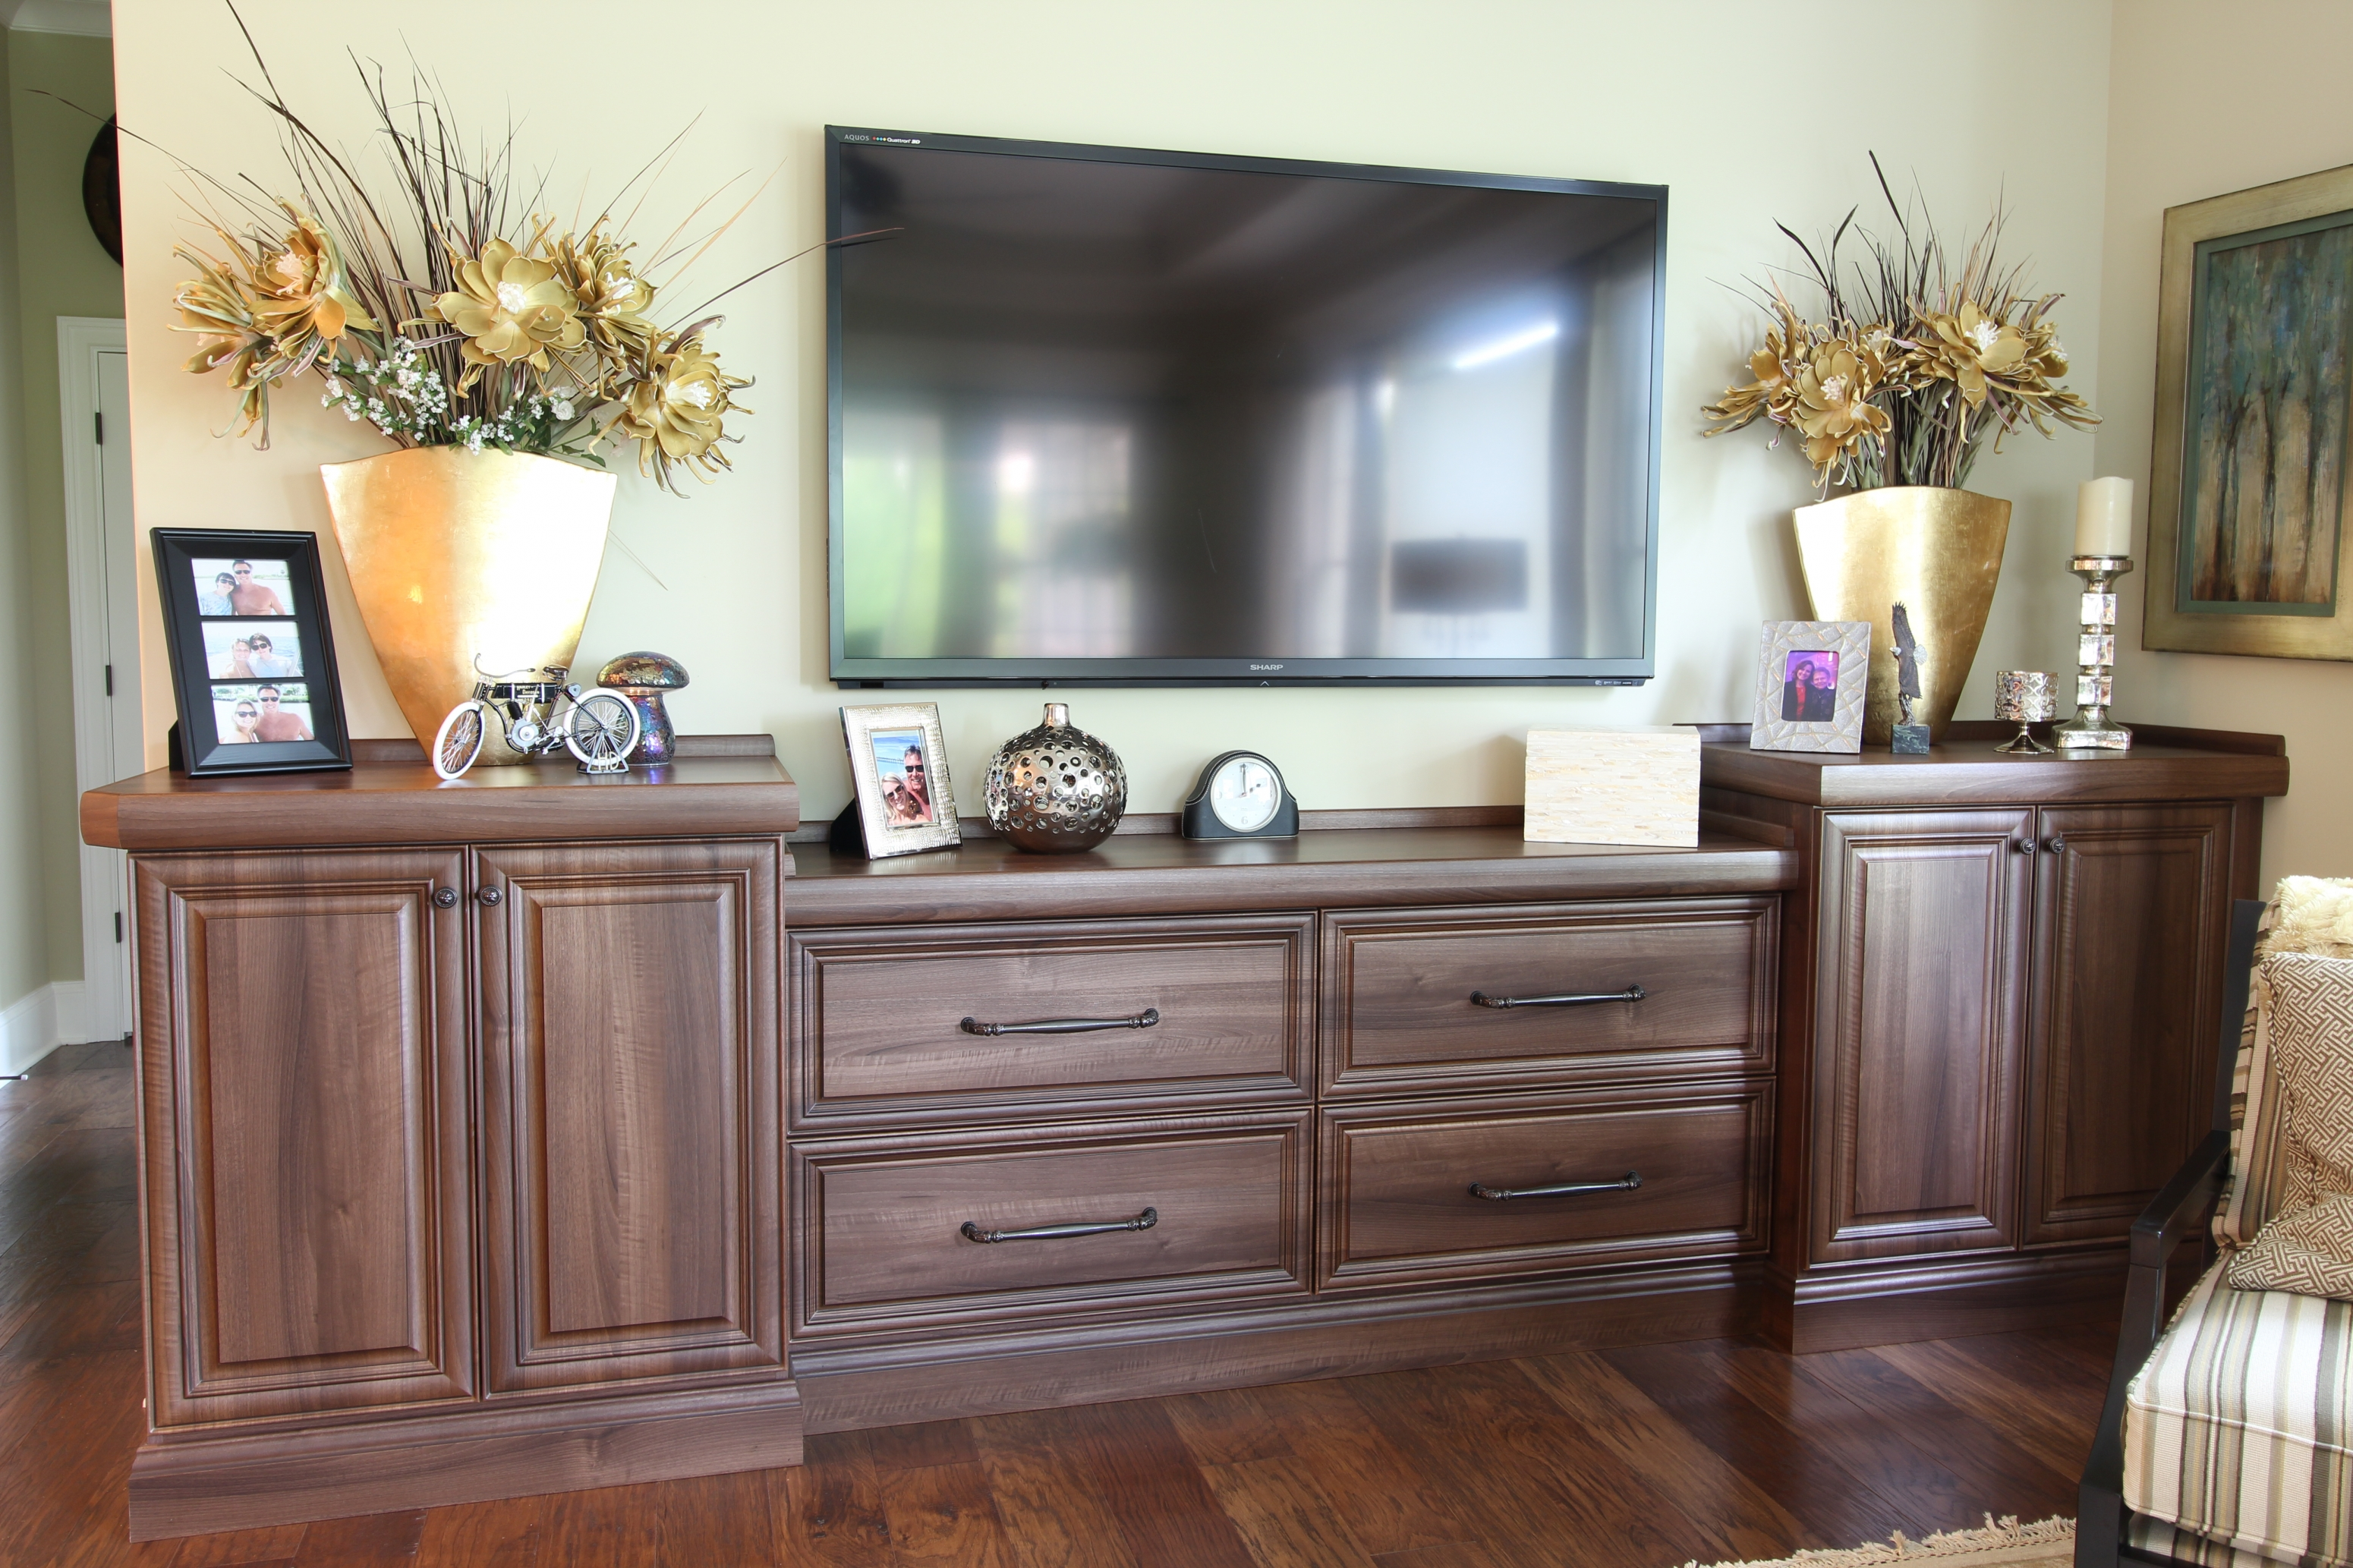 Built In Cabinets Carmel Fishers Westfield Amp More